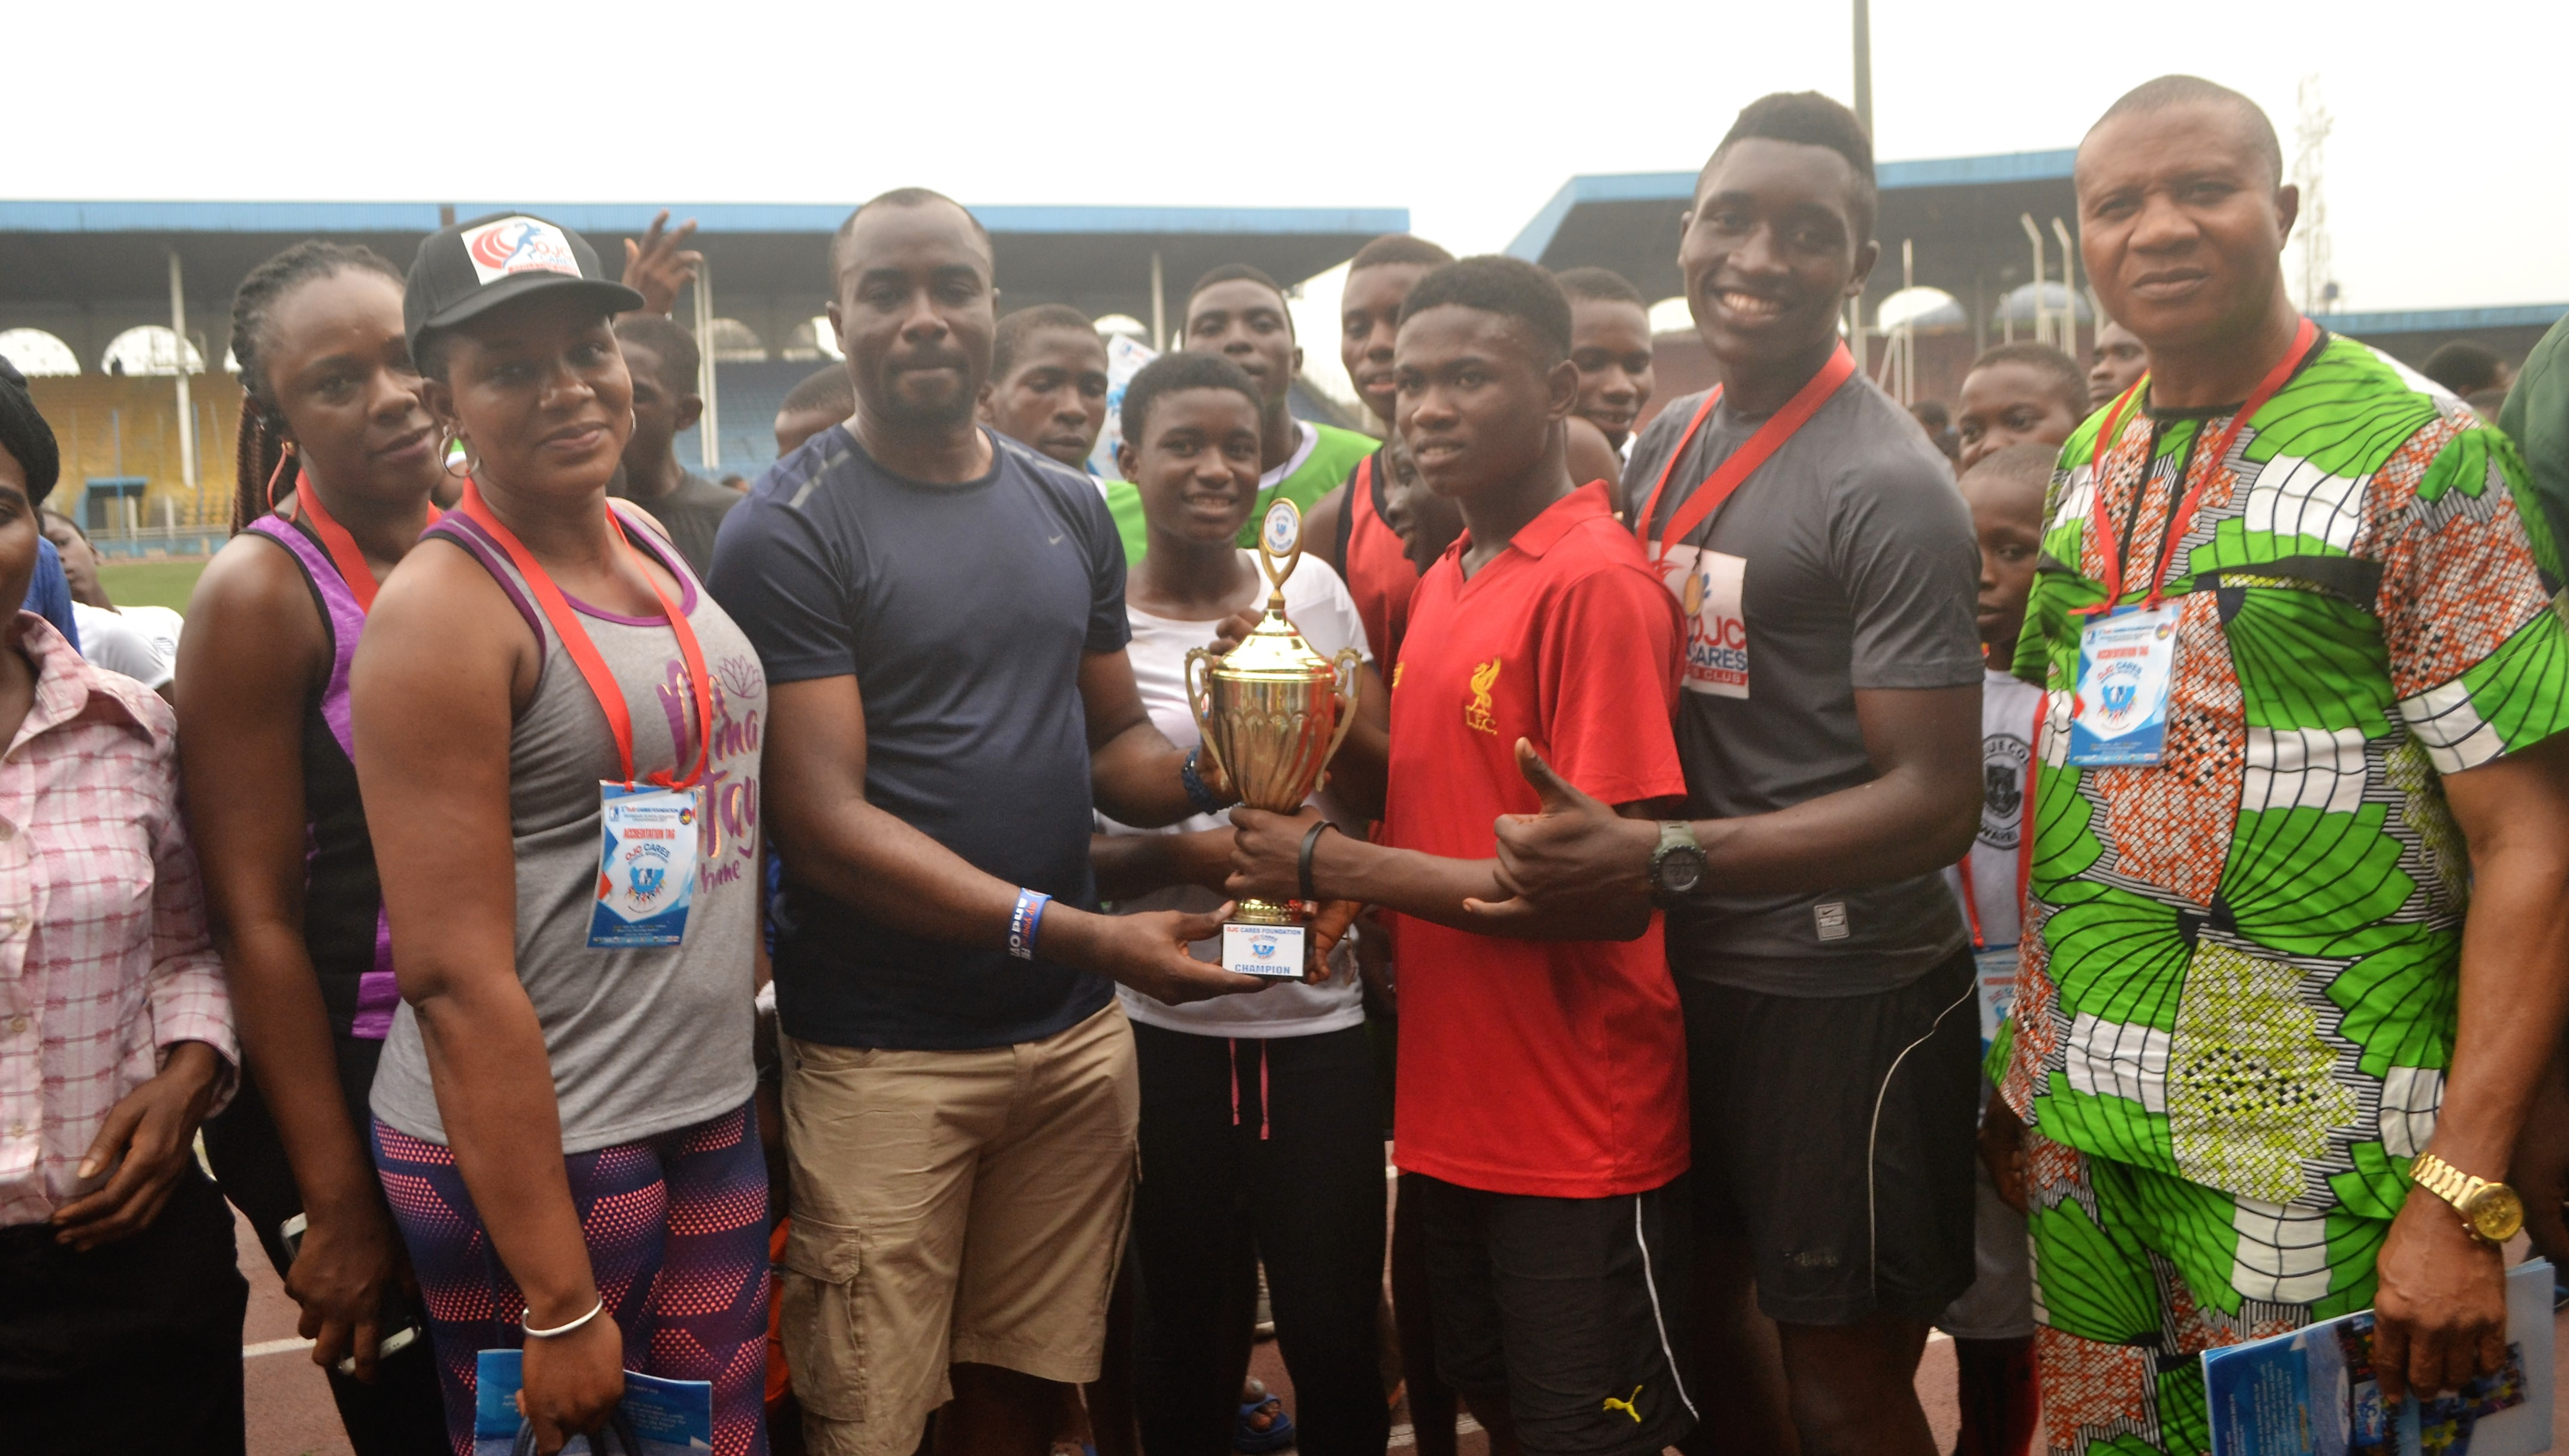 We want to discover athletes from secondary schools, NGO reveals